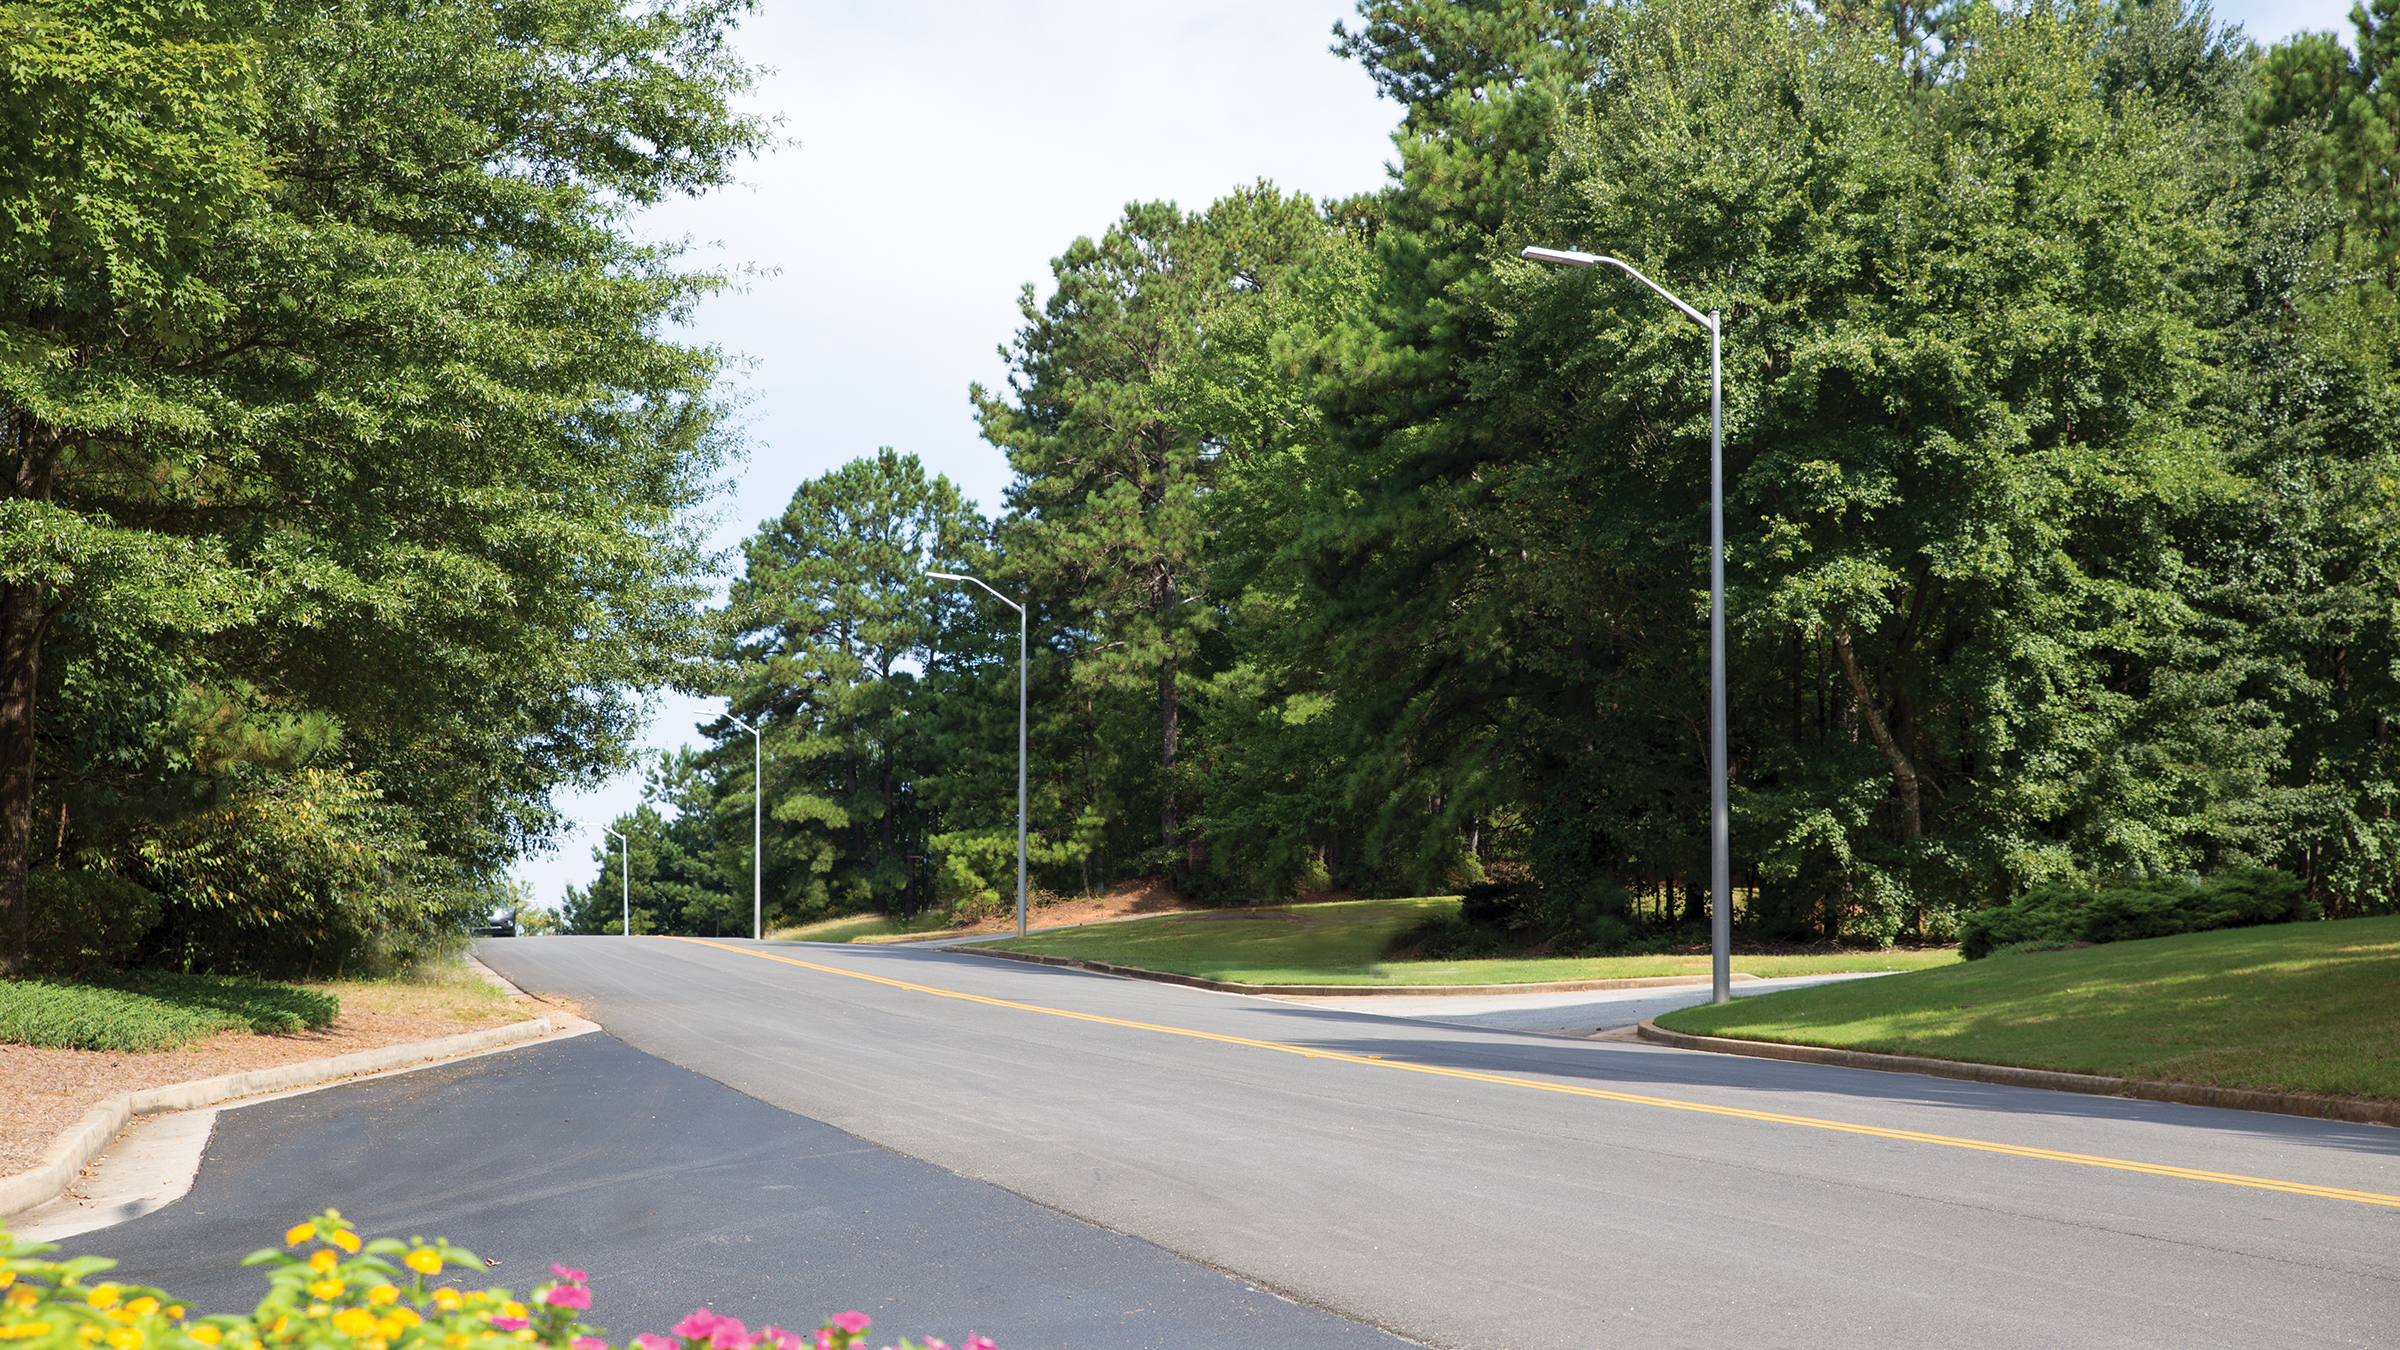 Residential roadway with street lights